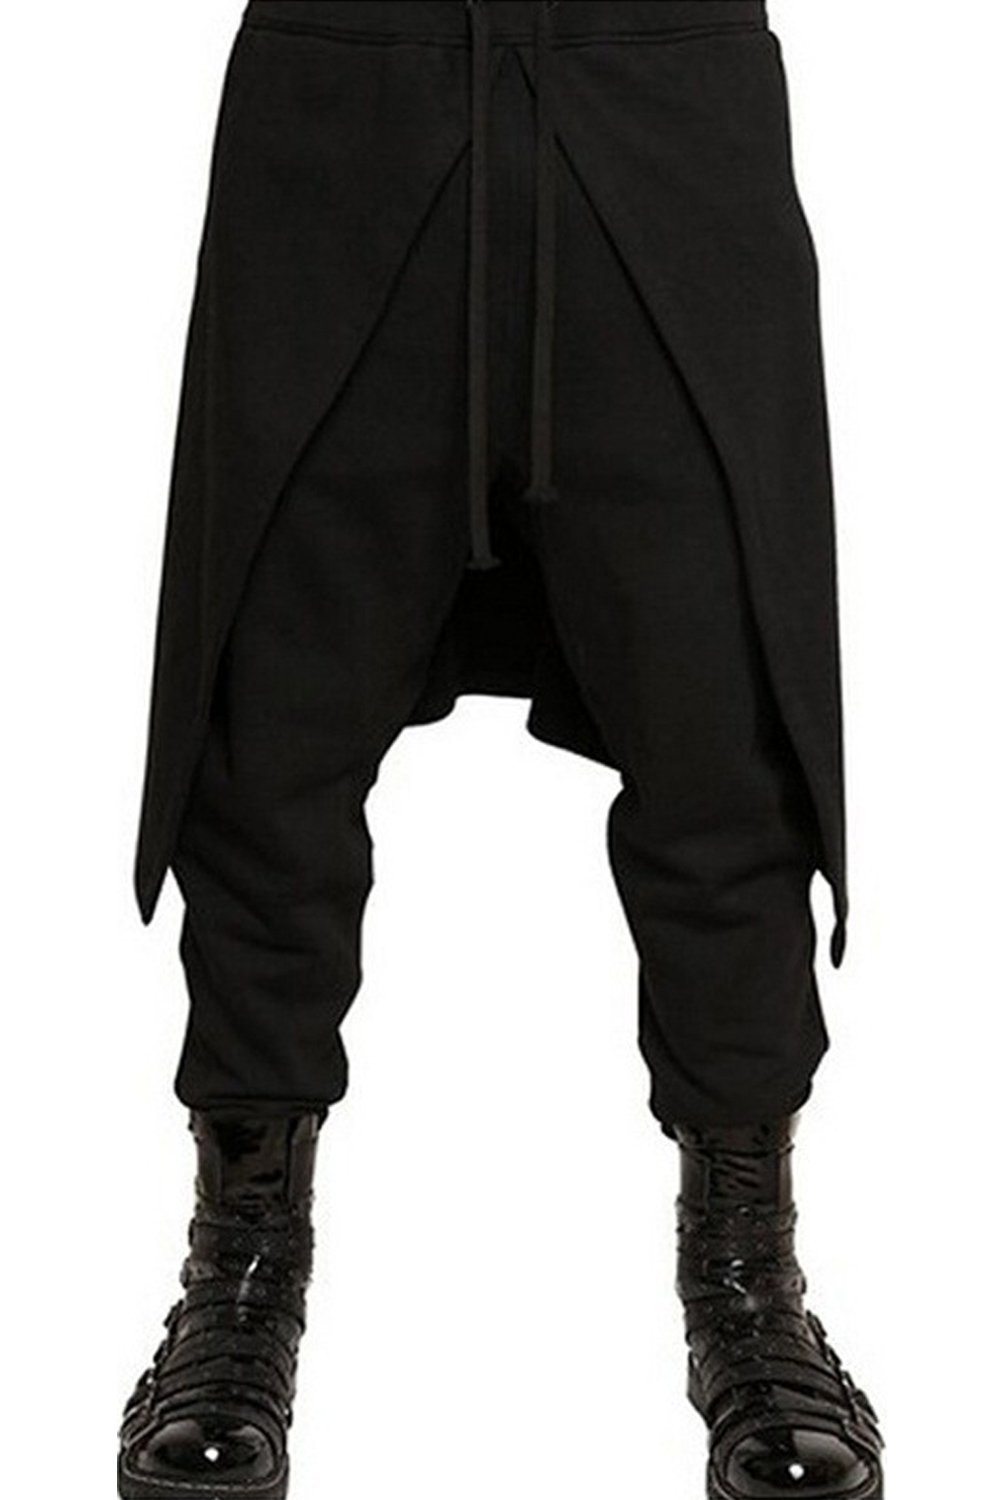 boomtrader Mens Medieval Steampunk Pants Punk Pirate Renaissance Gothic Trousers Costume 3